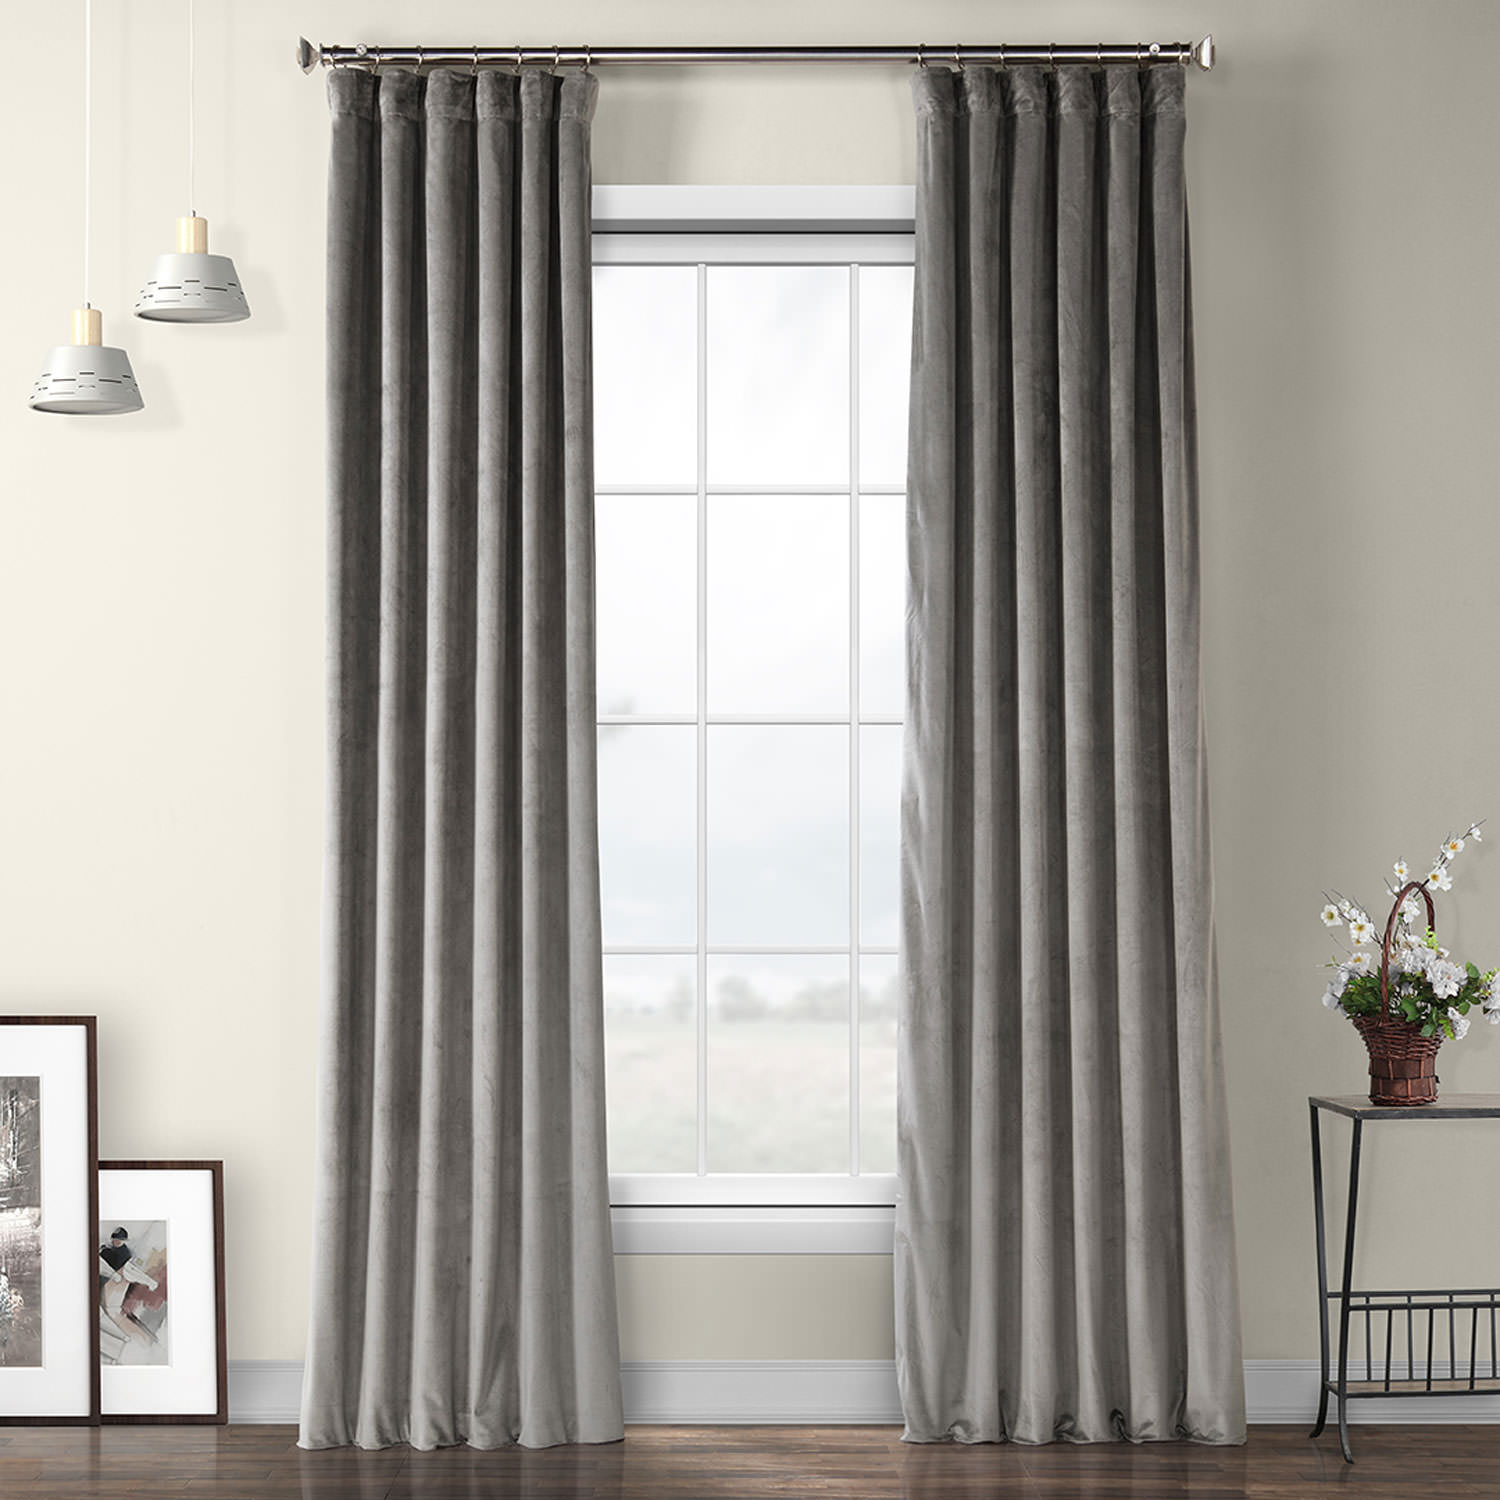 Destiny Grey Plush Velvet Curtain – Cambridge Stripe Curtain For Vertical Colorblock Panama Curtains (View 18 of 30)